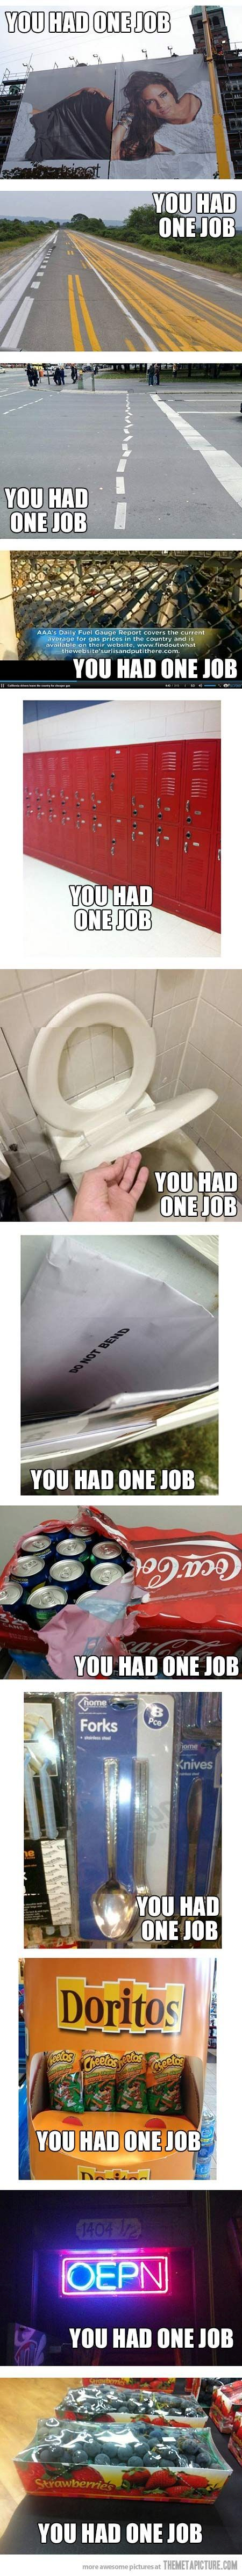 It was just one job…just...just one. | more funny pics available on www.drolementvotre.com: